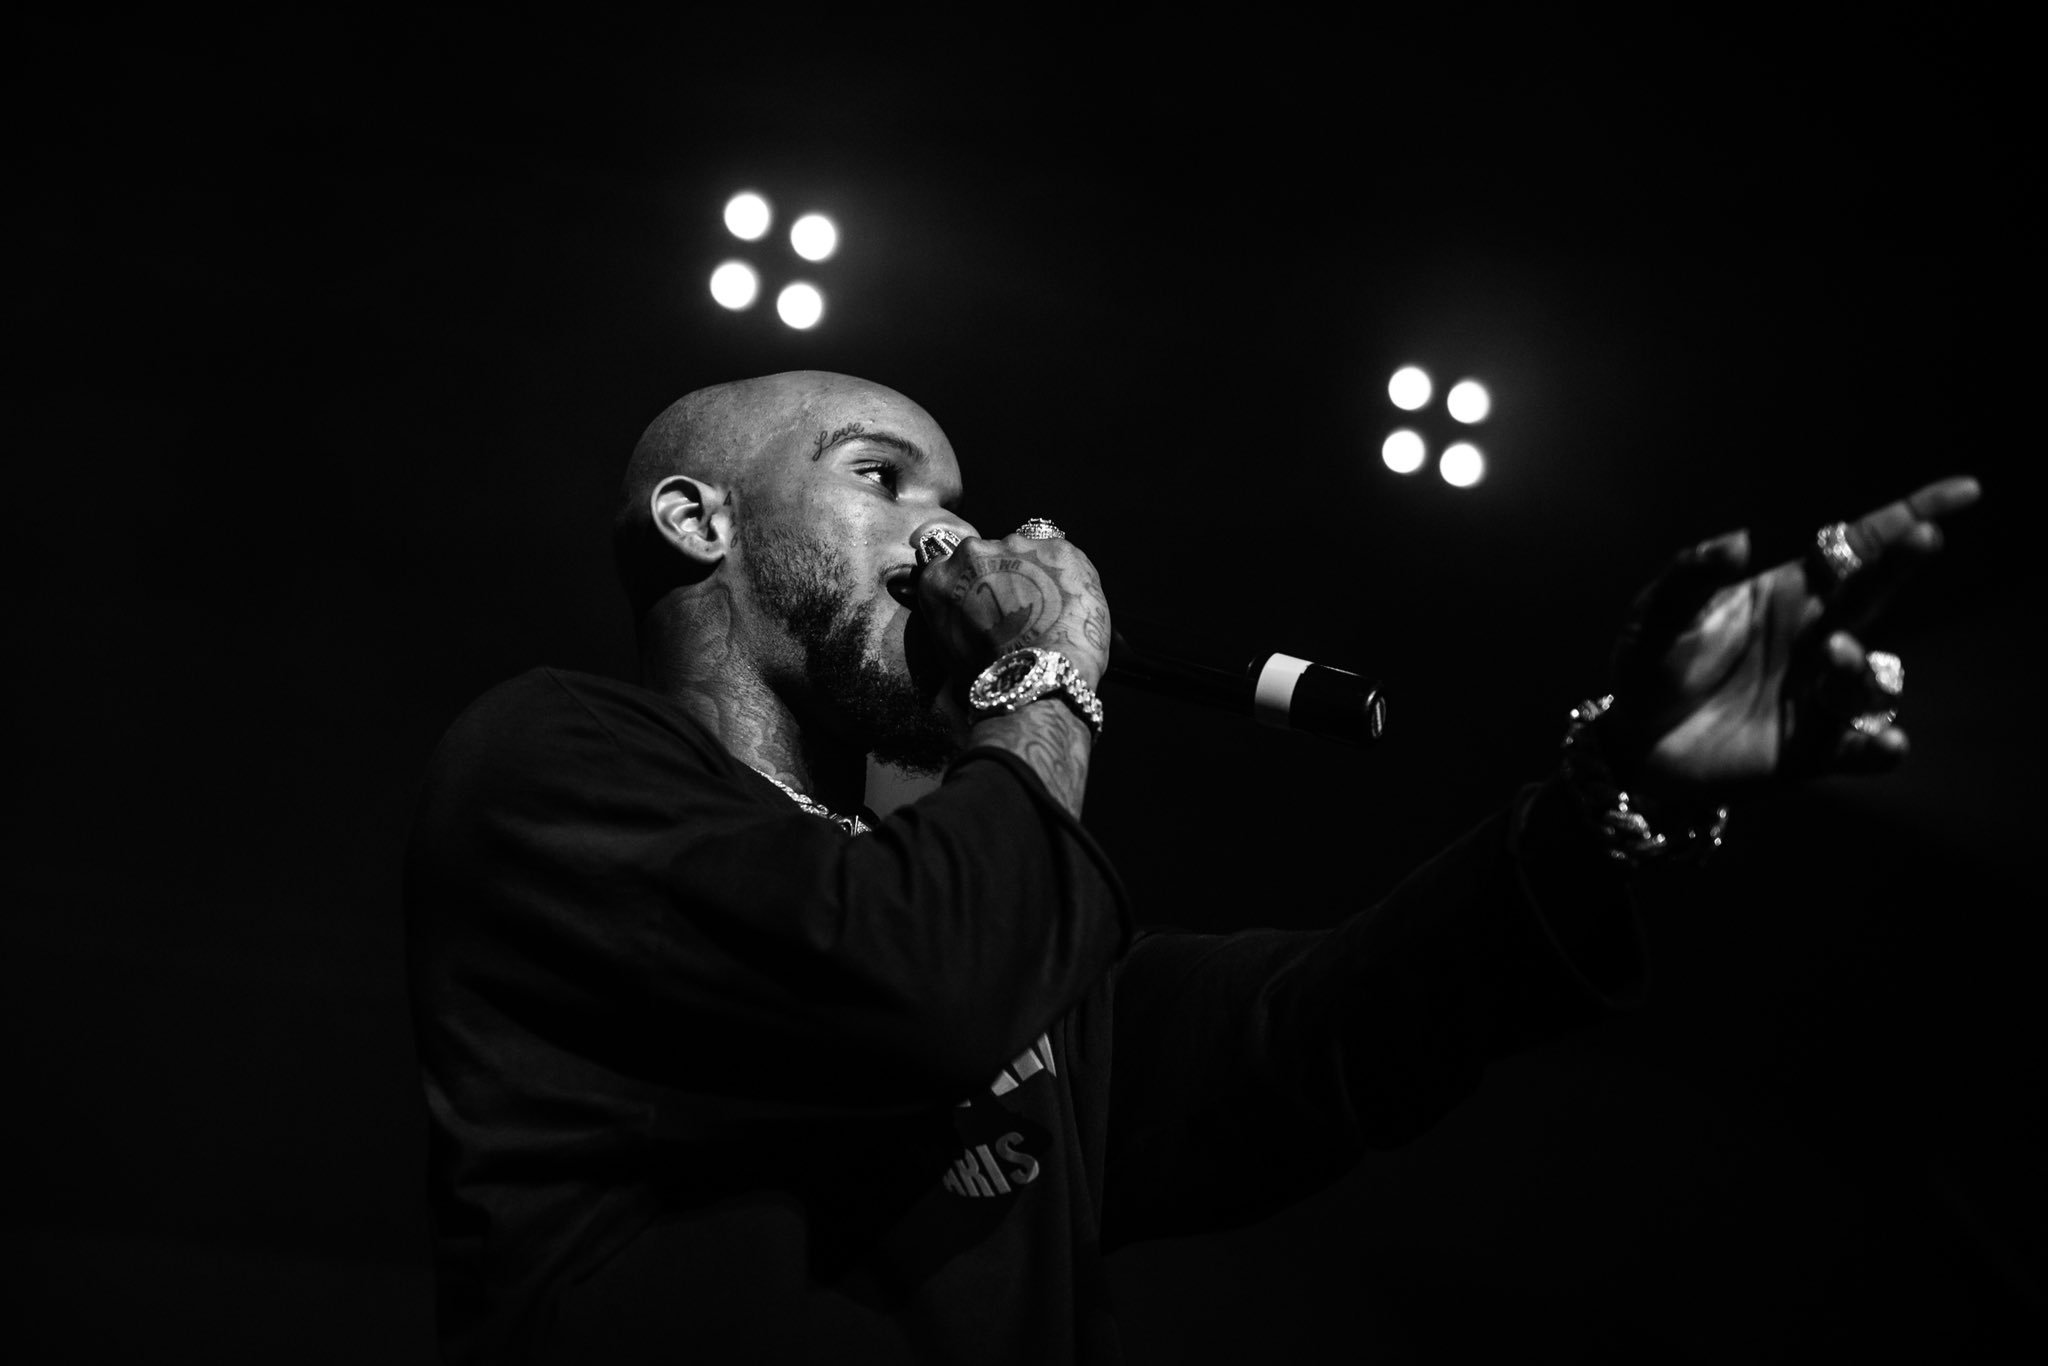 .@ToryLanez performing live at the @reventioncenter in Houston. Photos by @joeytortuga. https://t.co/mtXANi9lsR